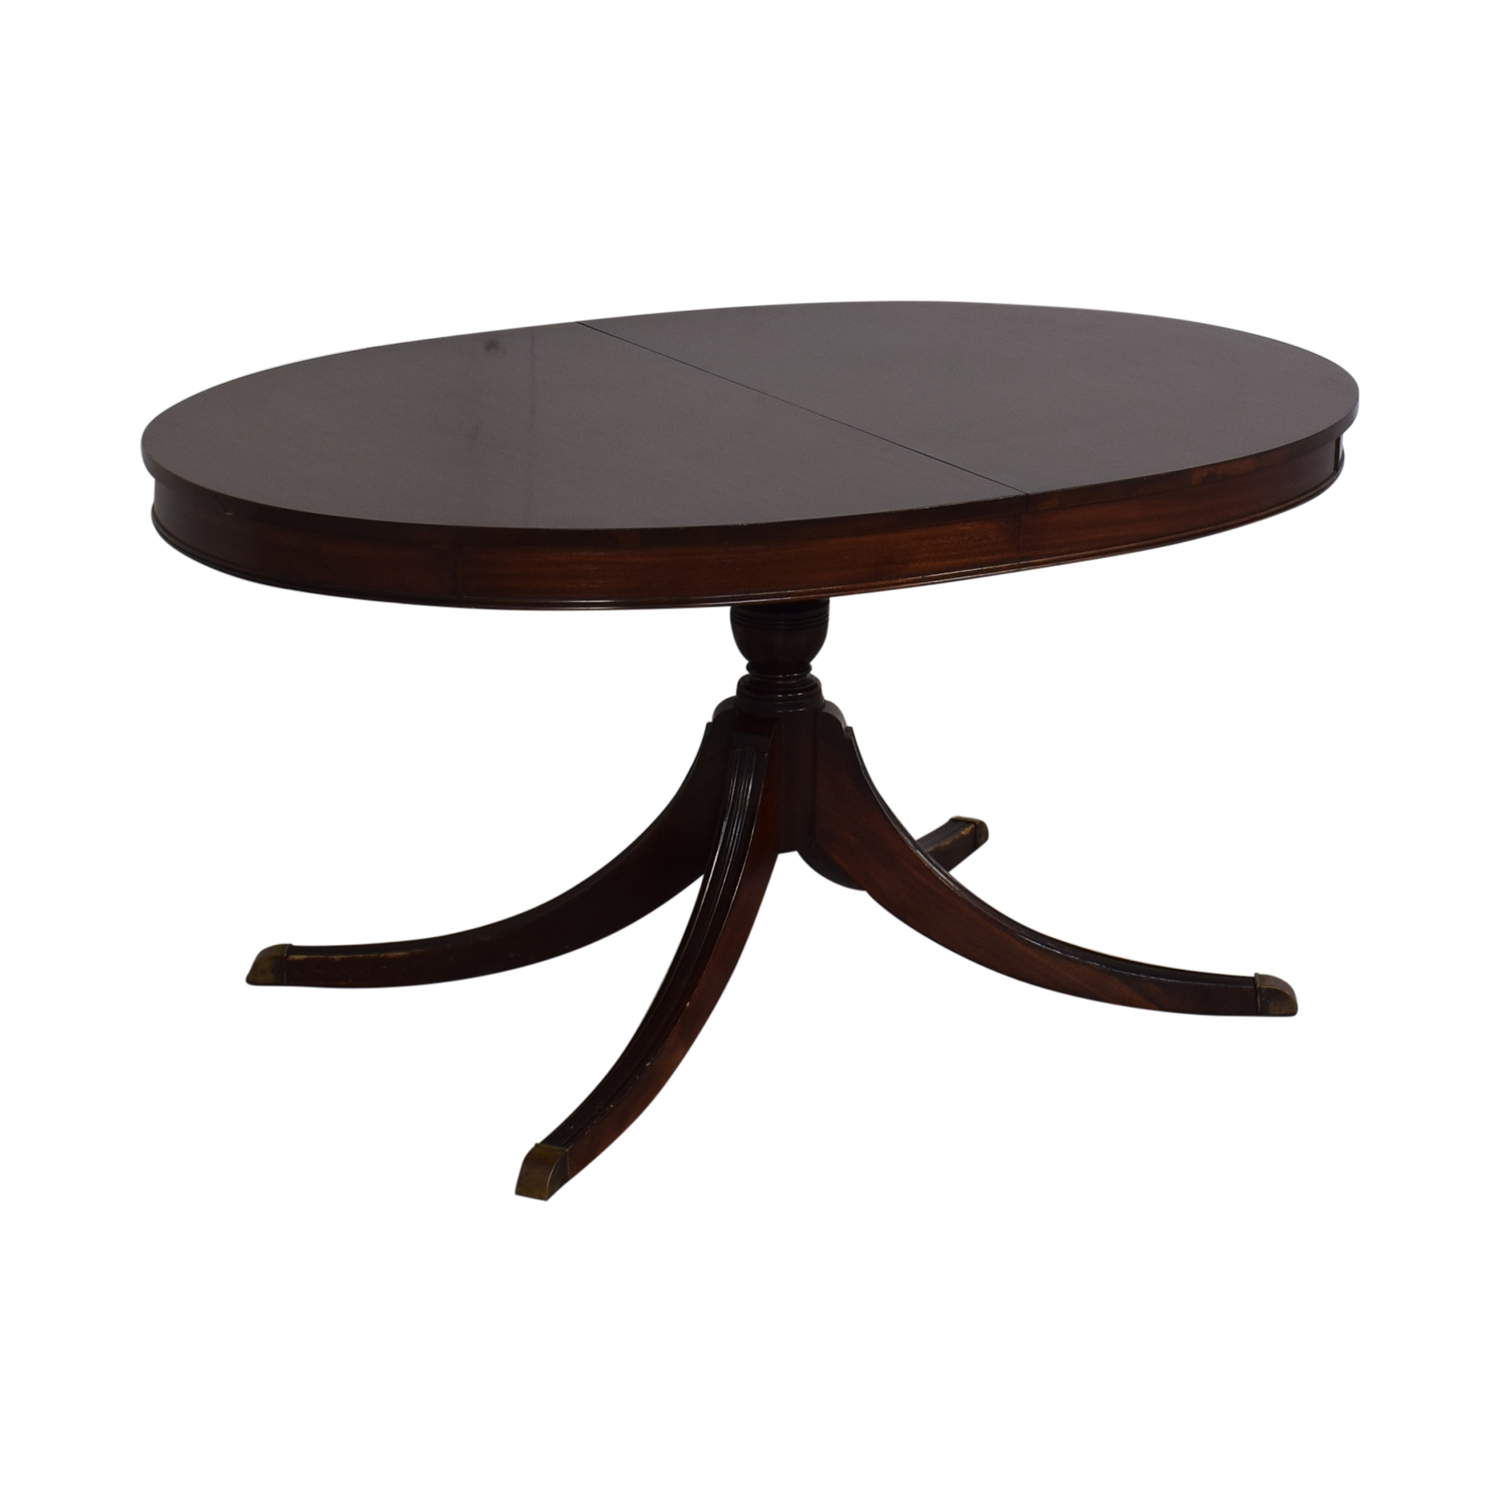 Antique Oval Dining Table / Dinner Tables